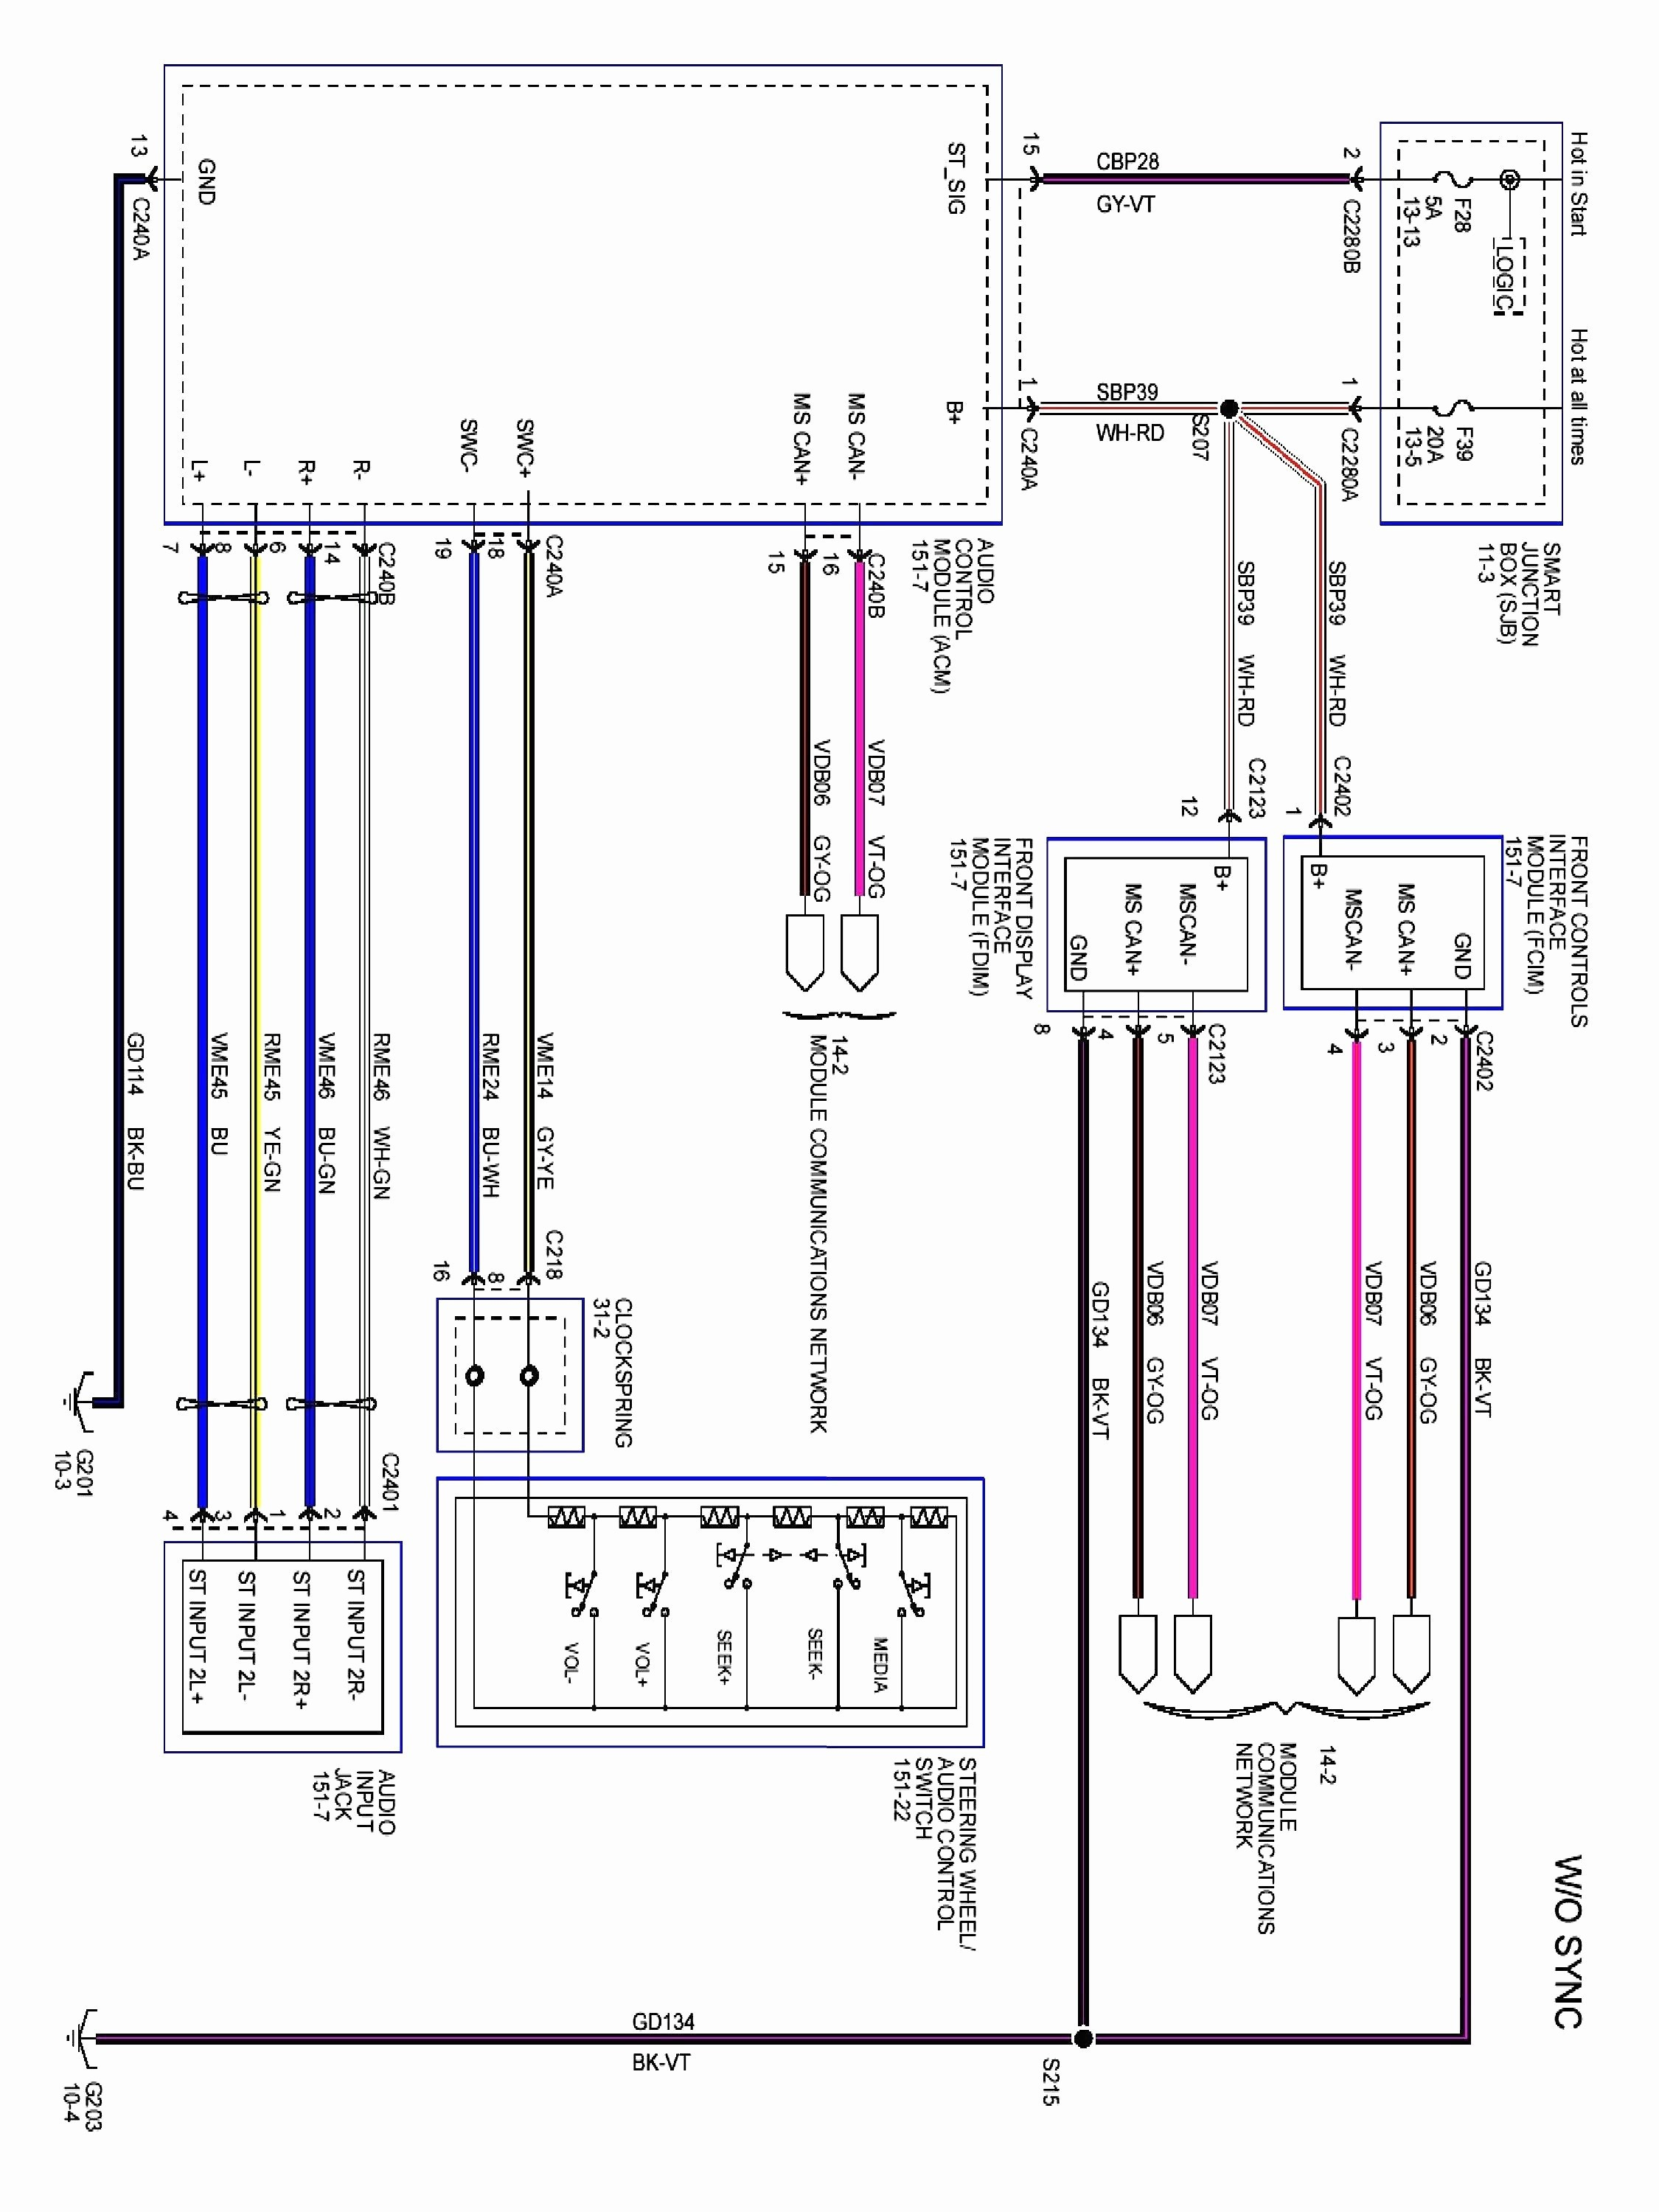 Car Battery Charger Schematic Diagram Best Transformer Wiring Symbols Automotive Sample Sound Of